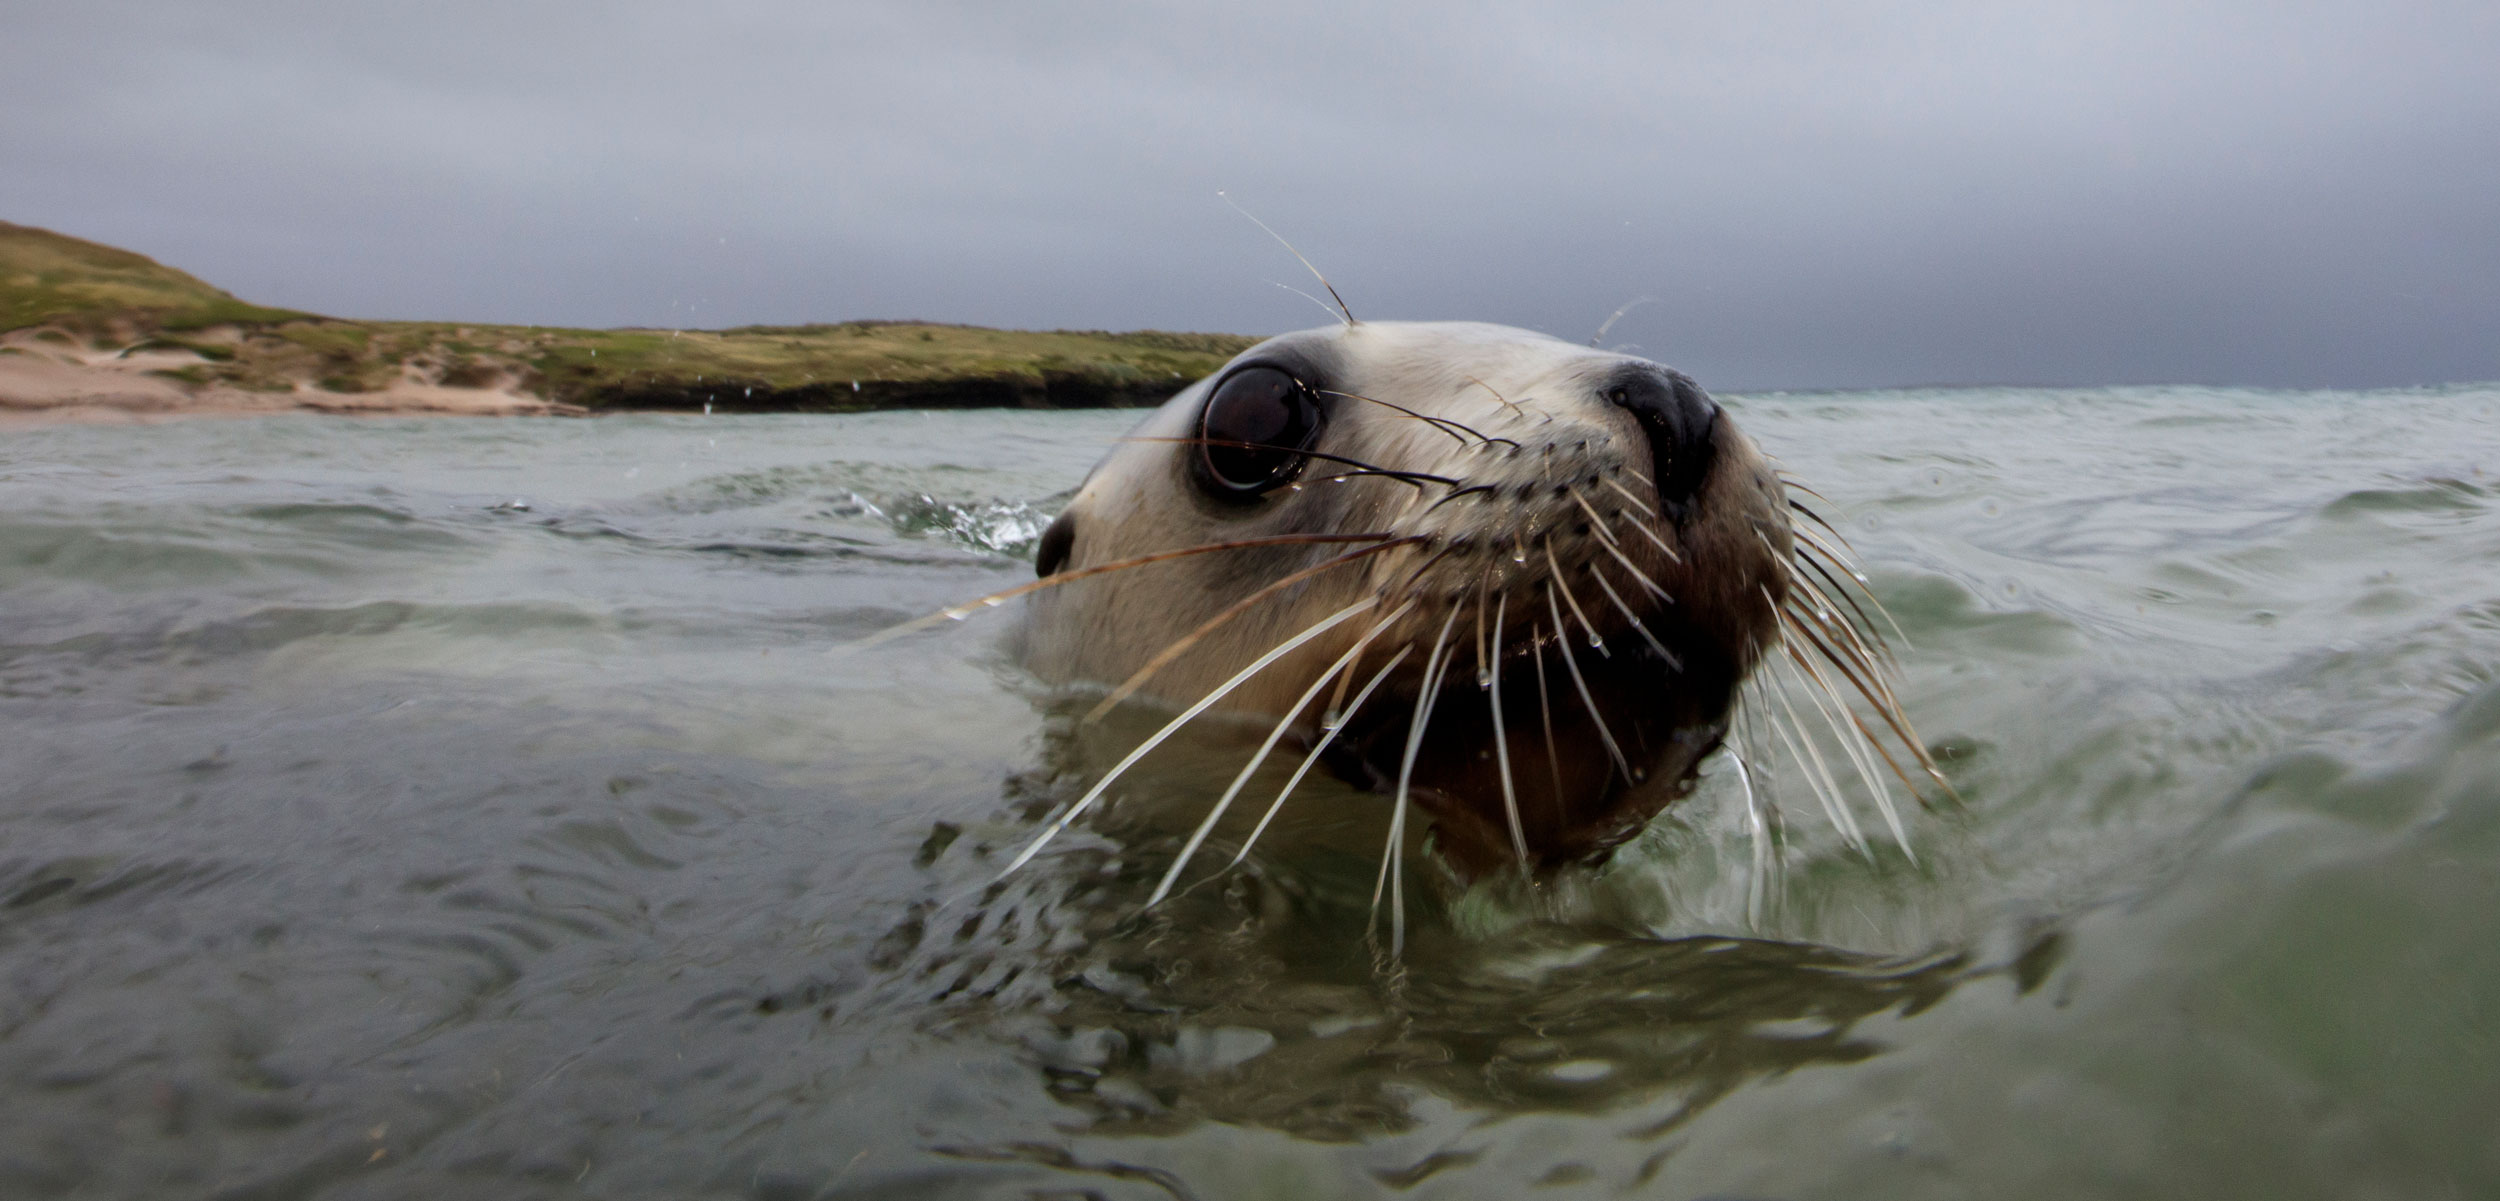 A New Zealand (Hooker's) sea lion